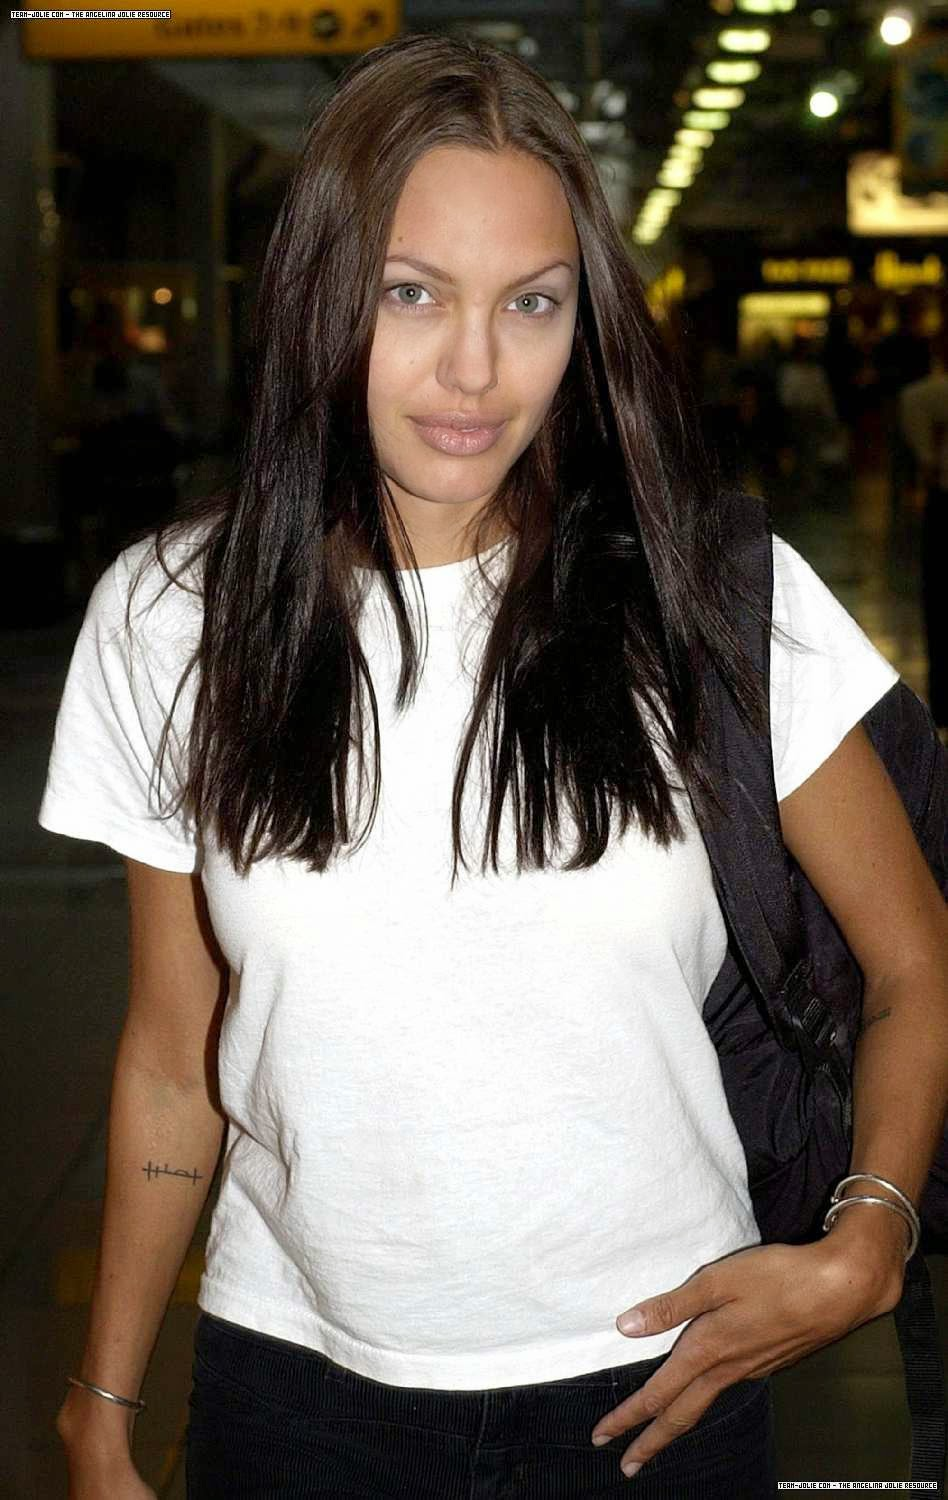 Angelina Jolie Picture Archives: Candids of Angelina Jolie ... Angelina Jolie And Brad Pitt